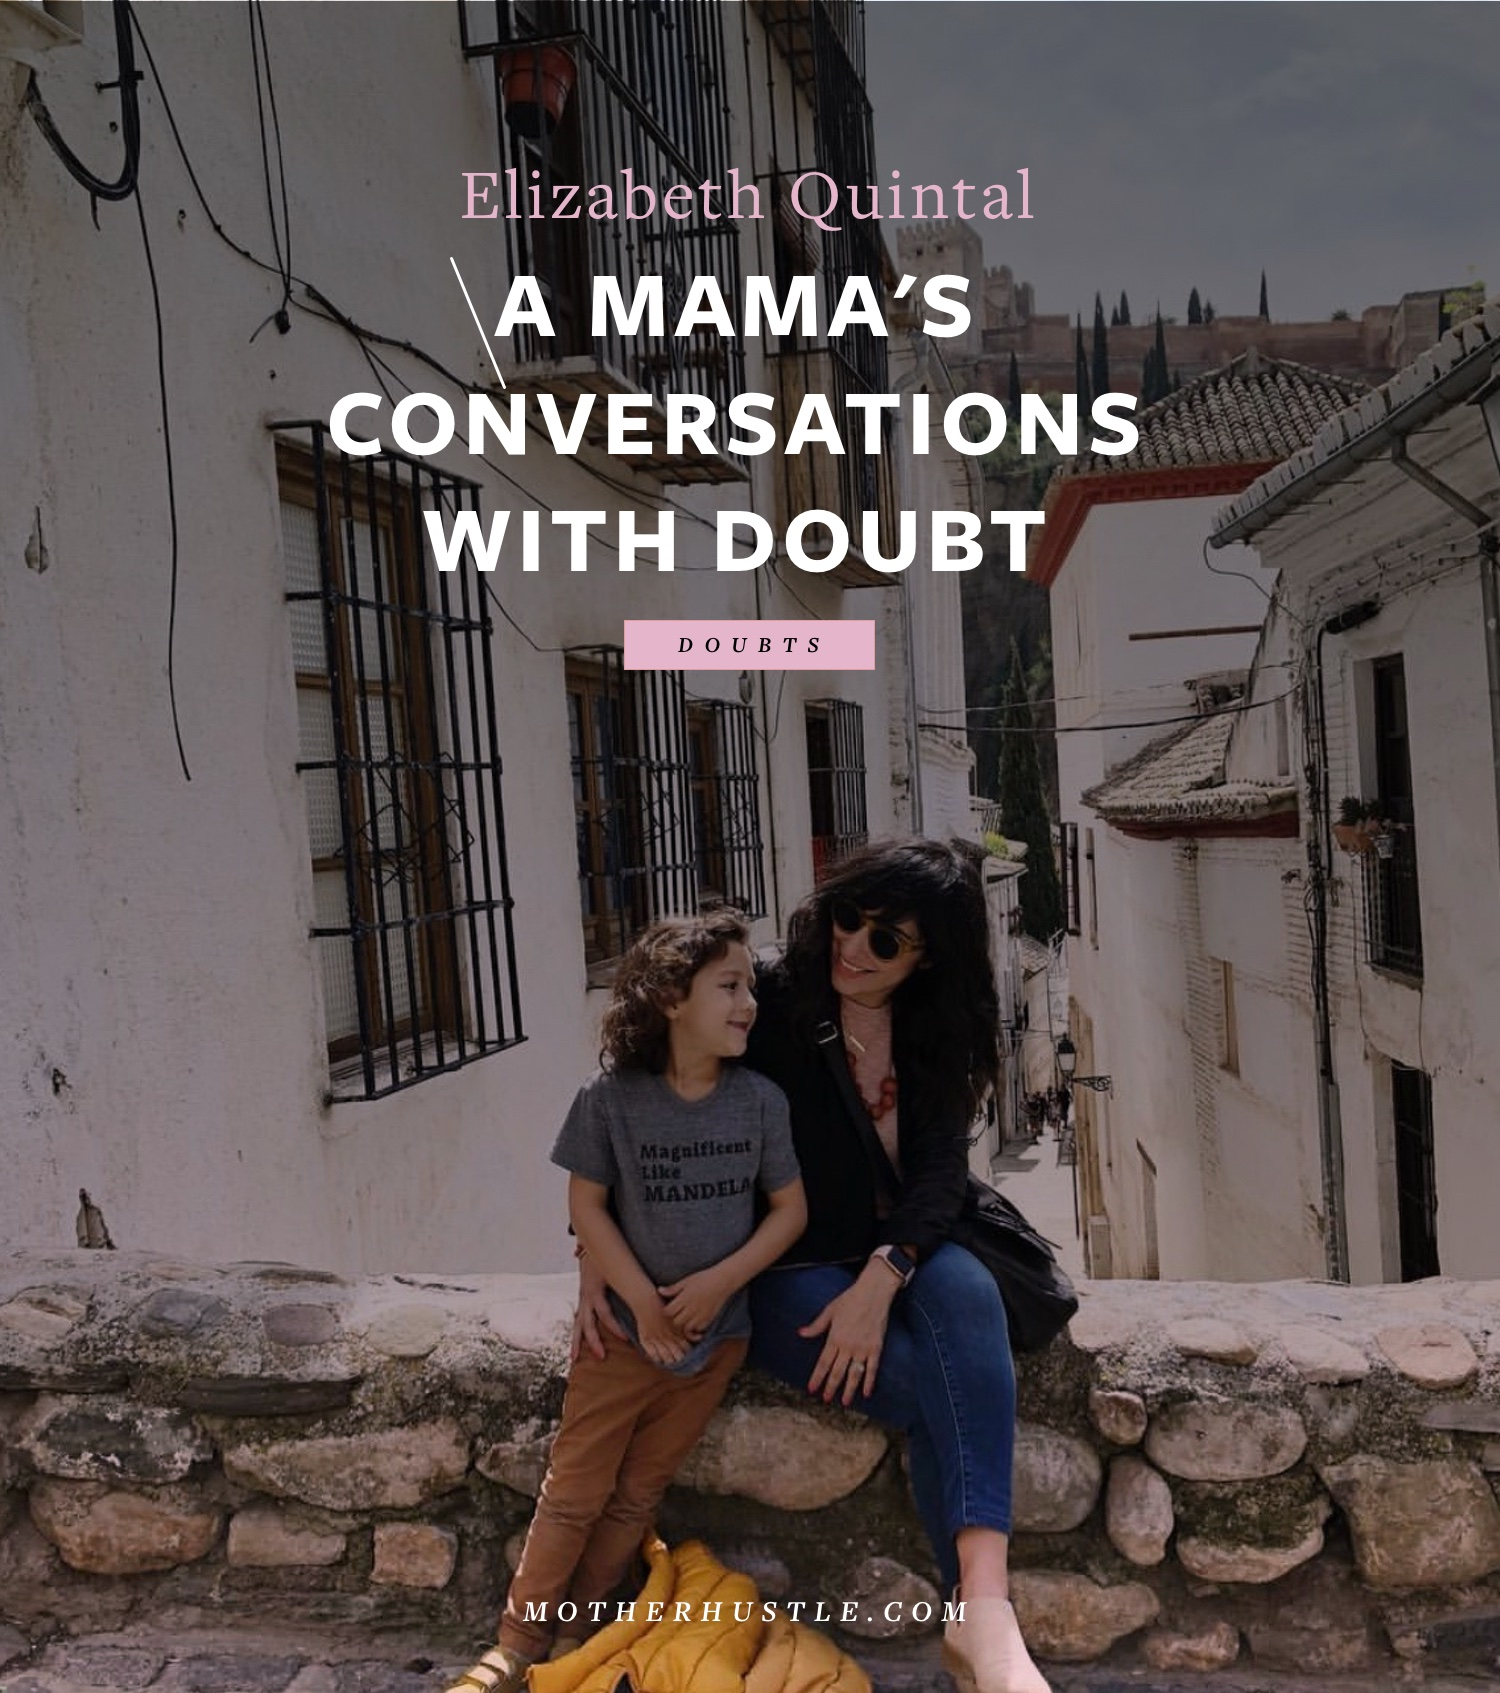 A Mama's Conversation with Doubt - by Elizabeth Quintal for MotherHustle